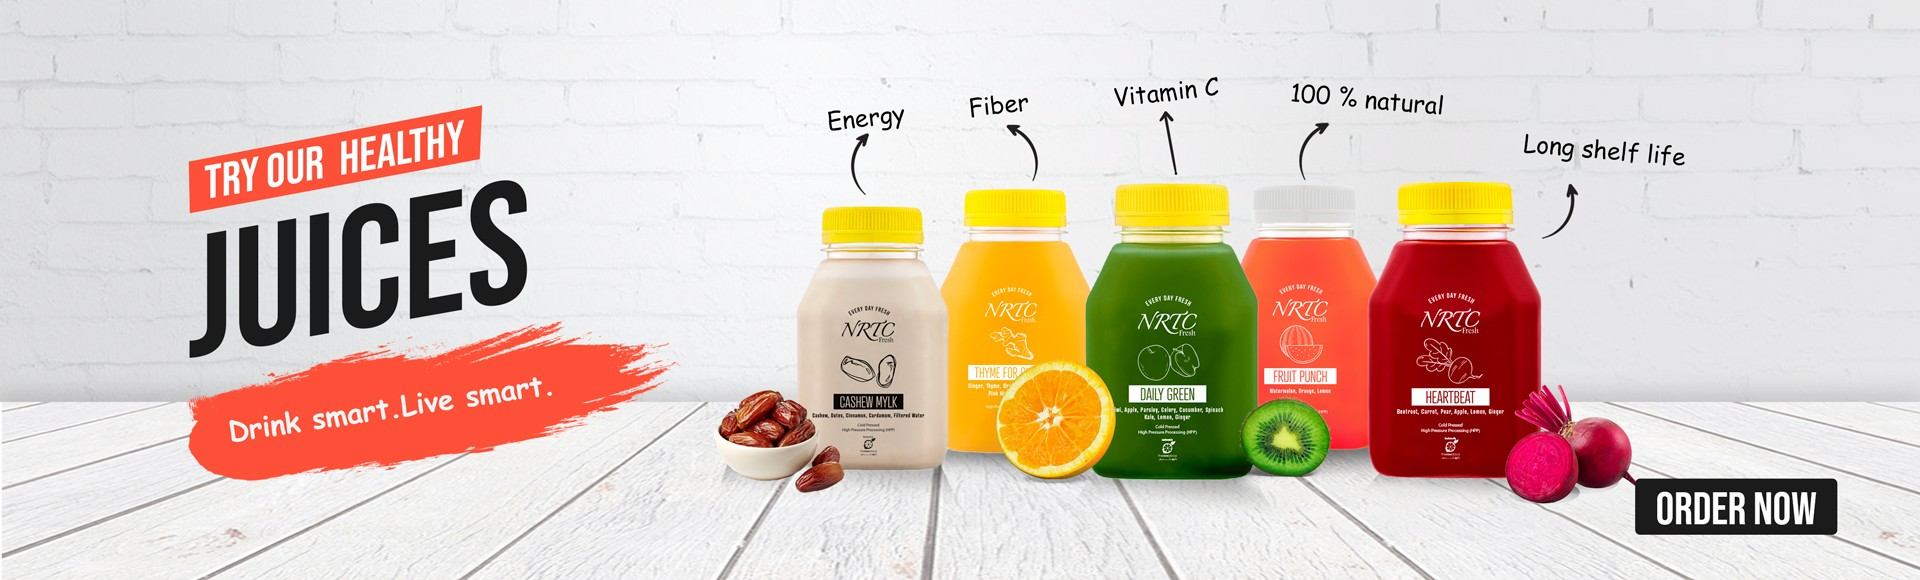 NRTC - Our Healthy Juices